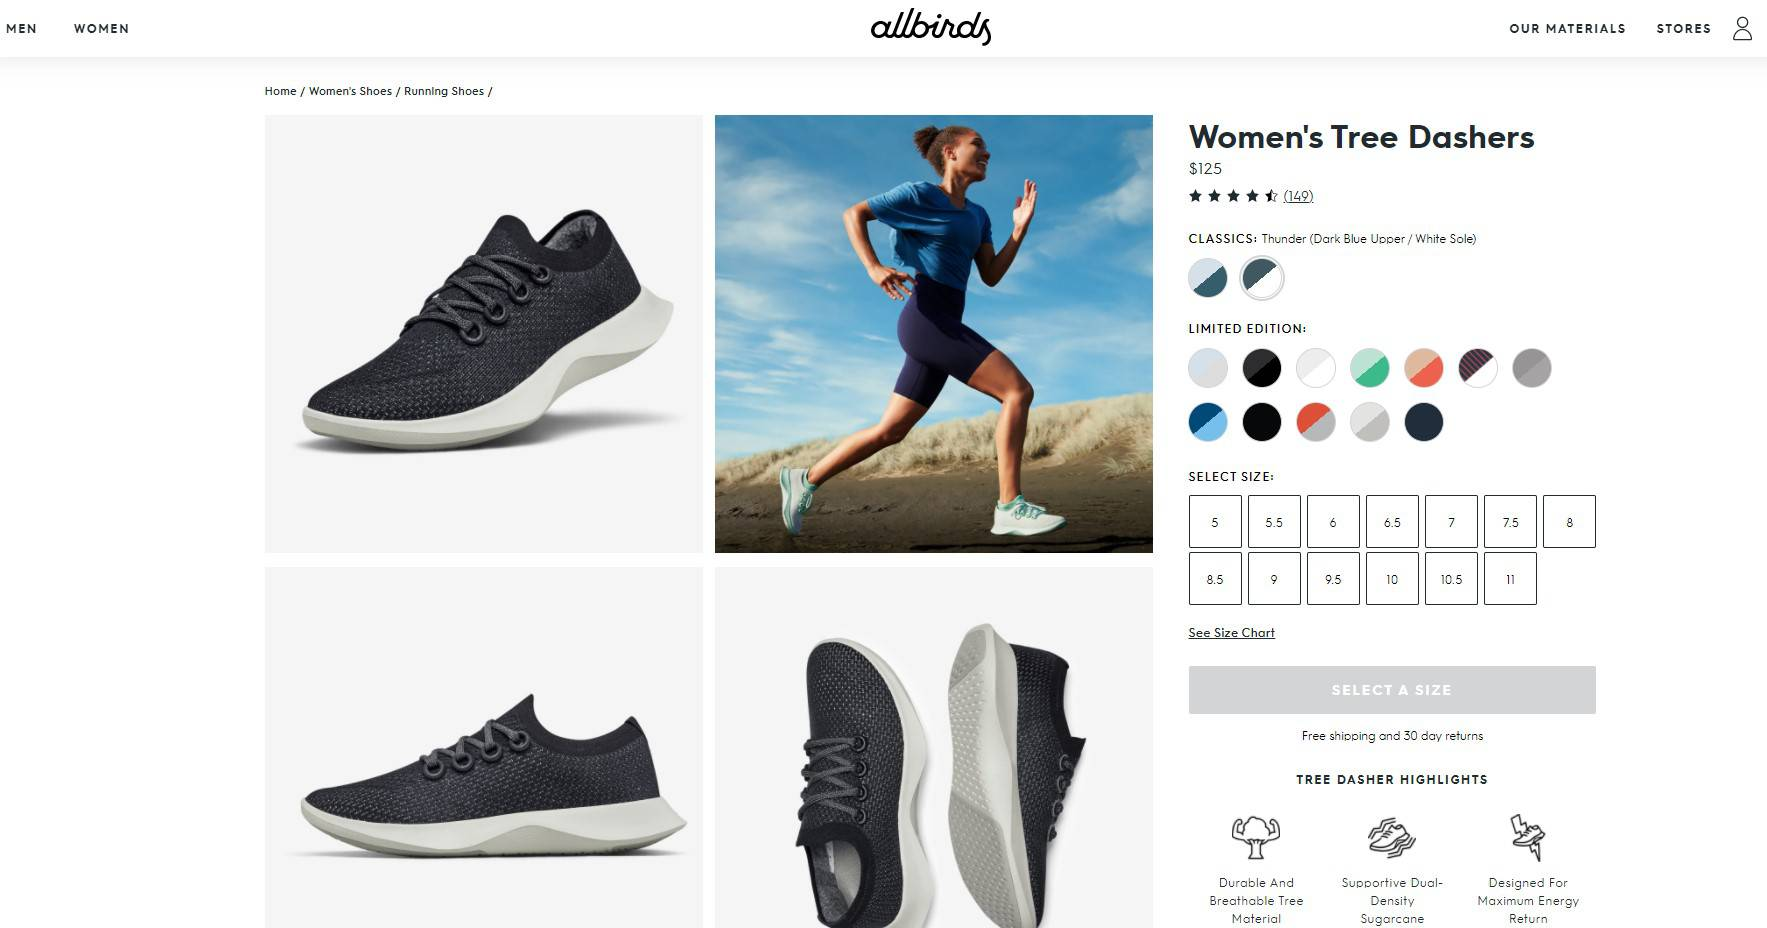 Allbirds product page for Women's Tree Dashers showing a female runner and sneakers